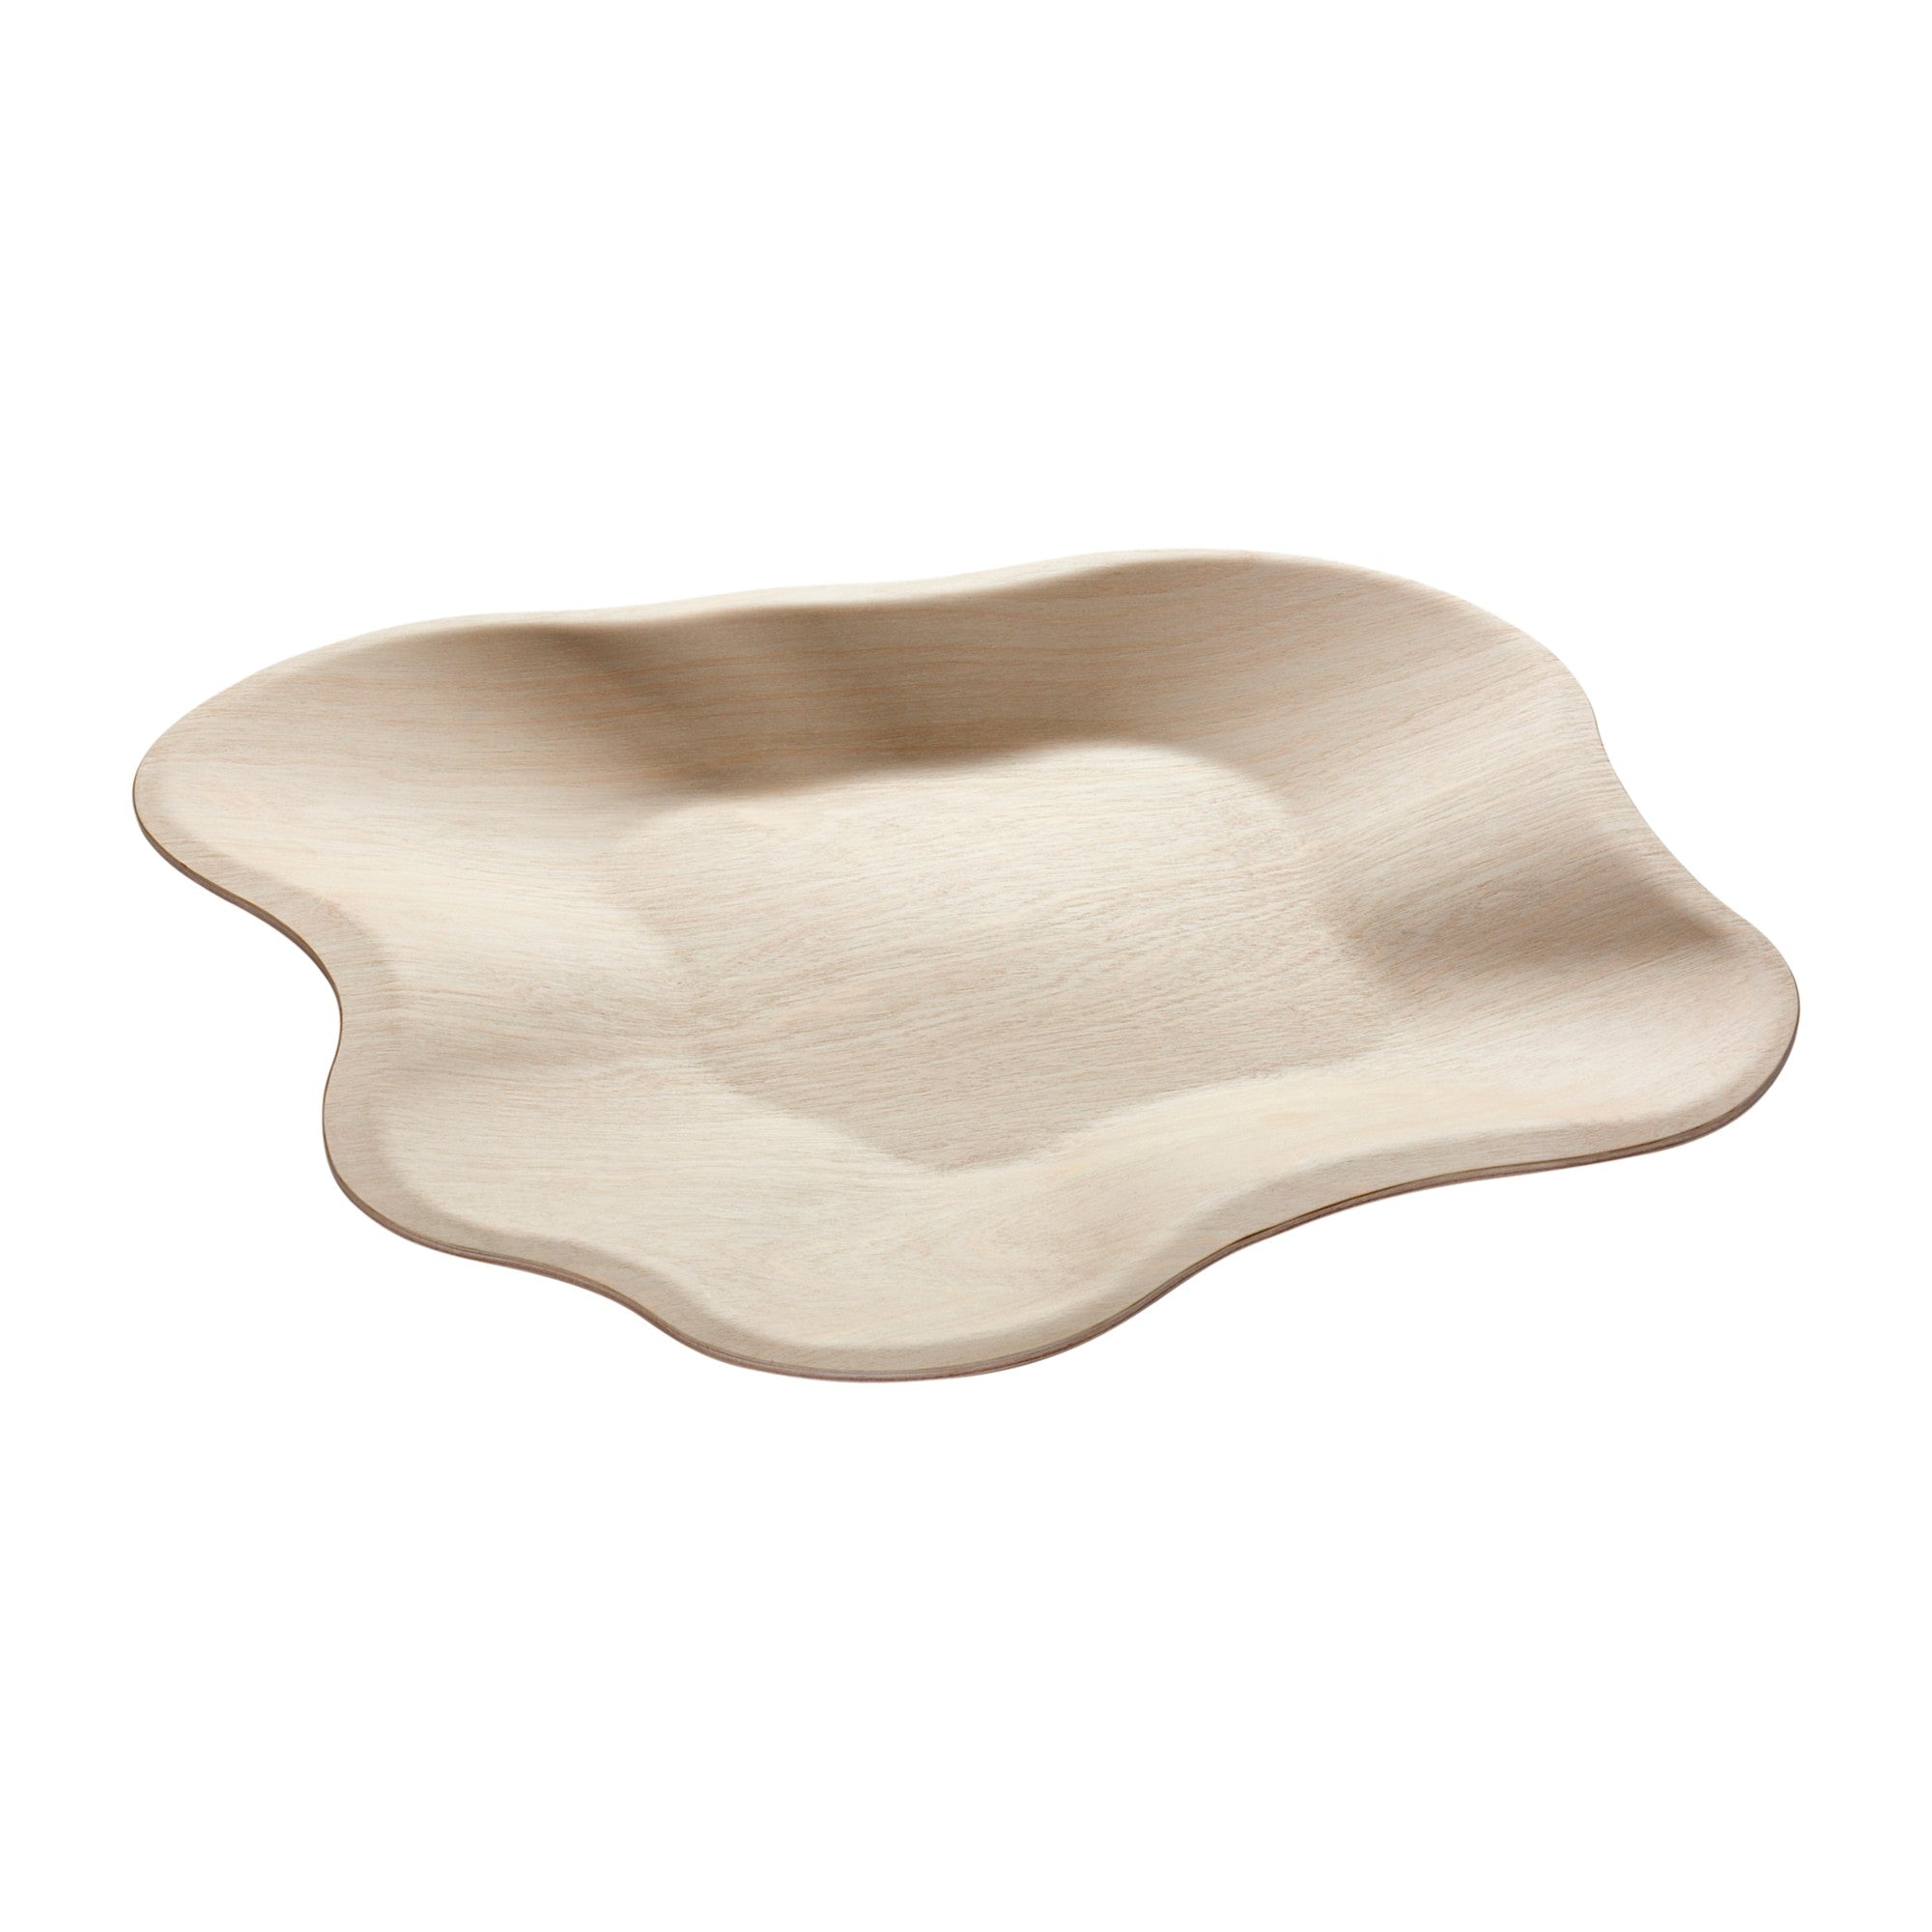 "AALTO BOWL 20"" PLYWOOD VENEER *LAST ONE"